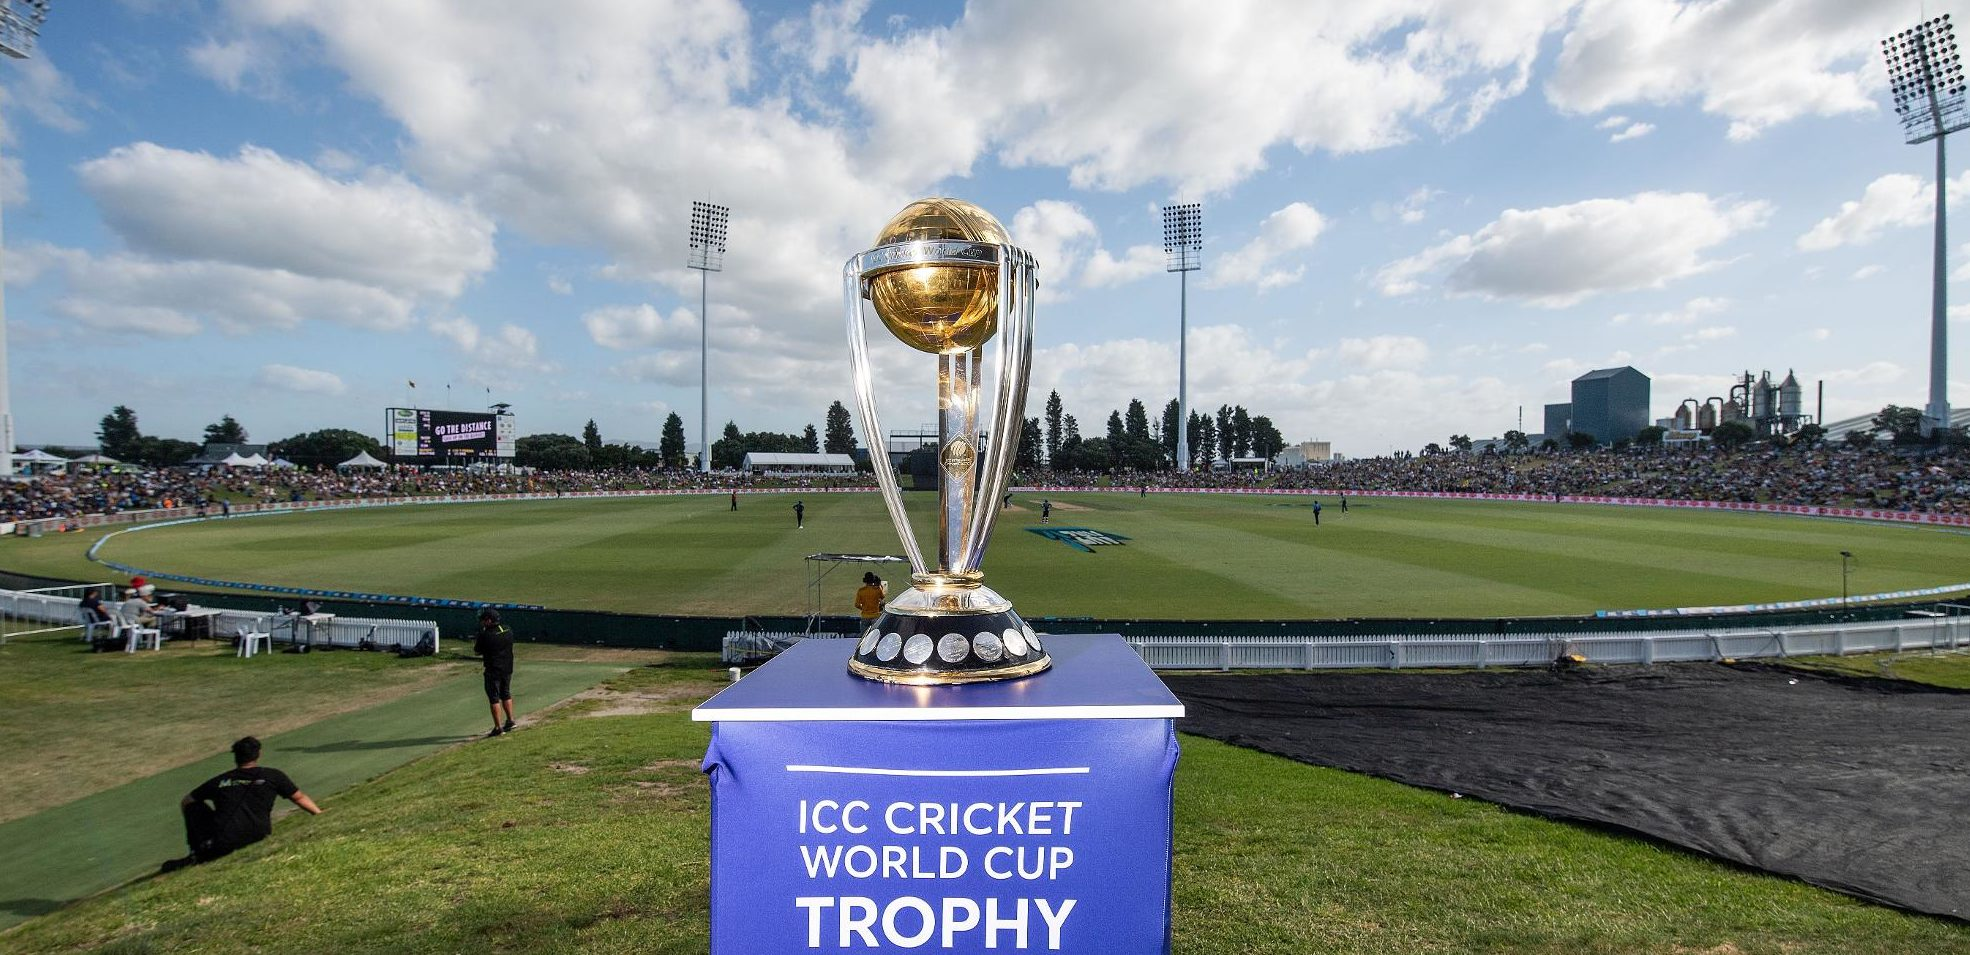 ICC cricket world cup 2019 live steaming: where and how to Watch on